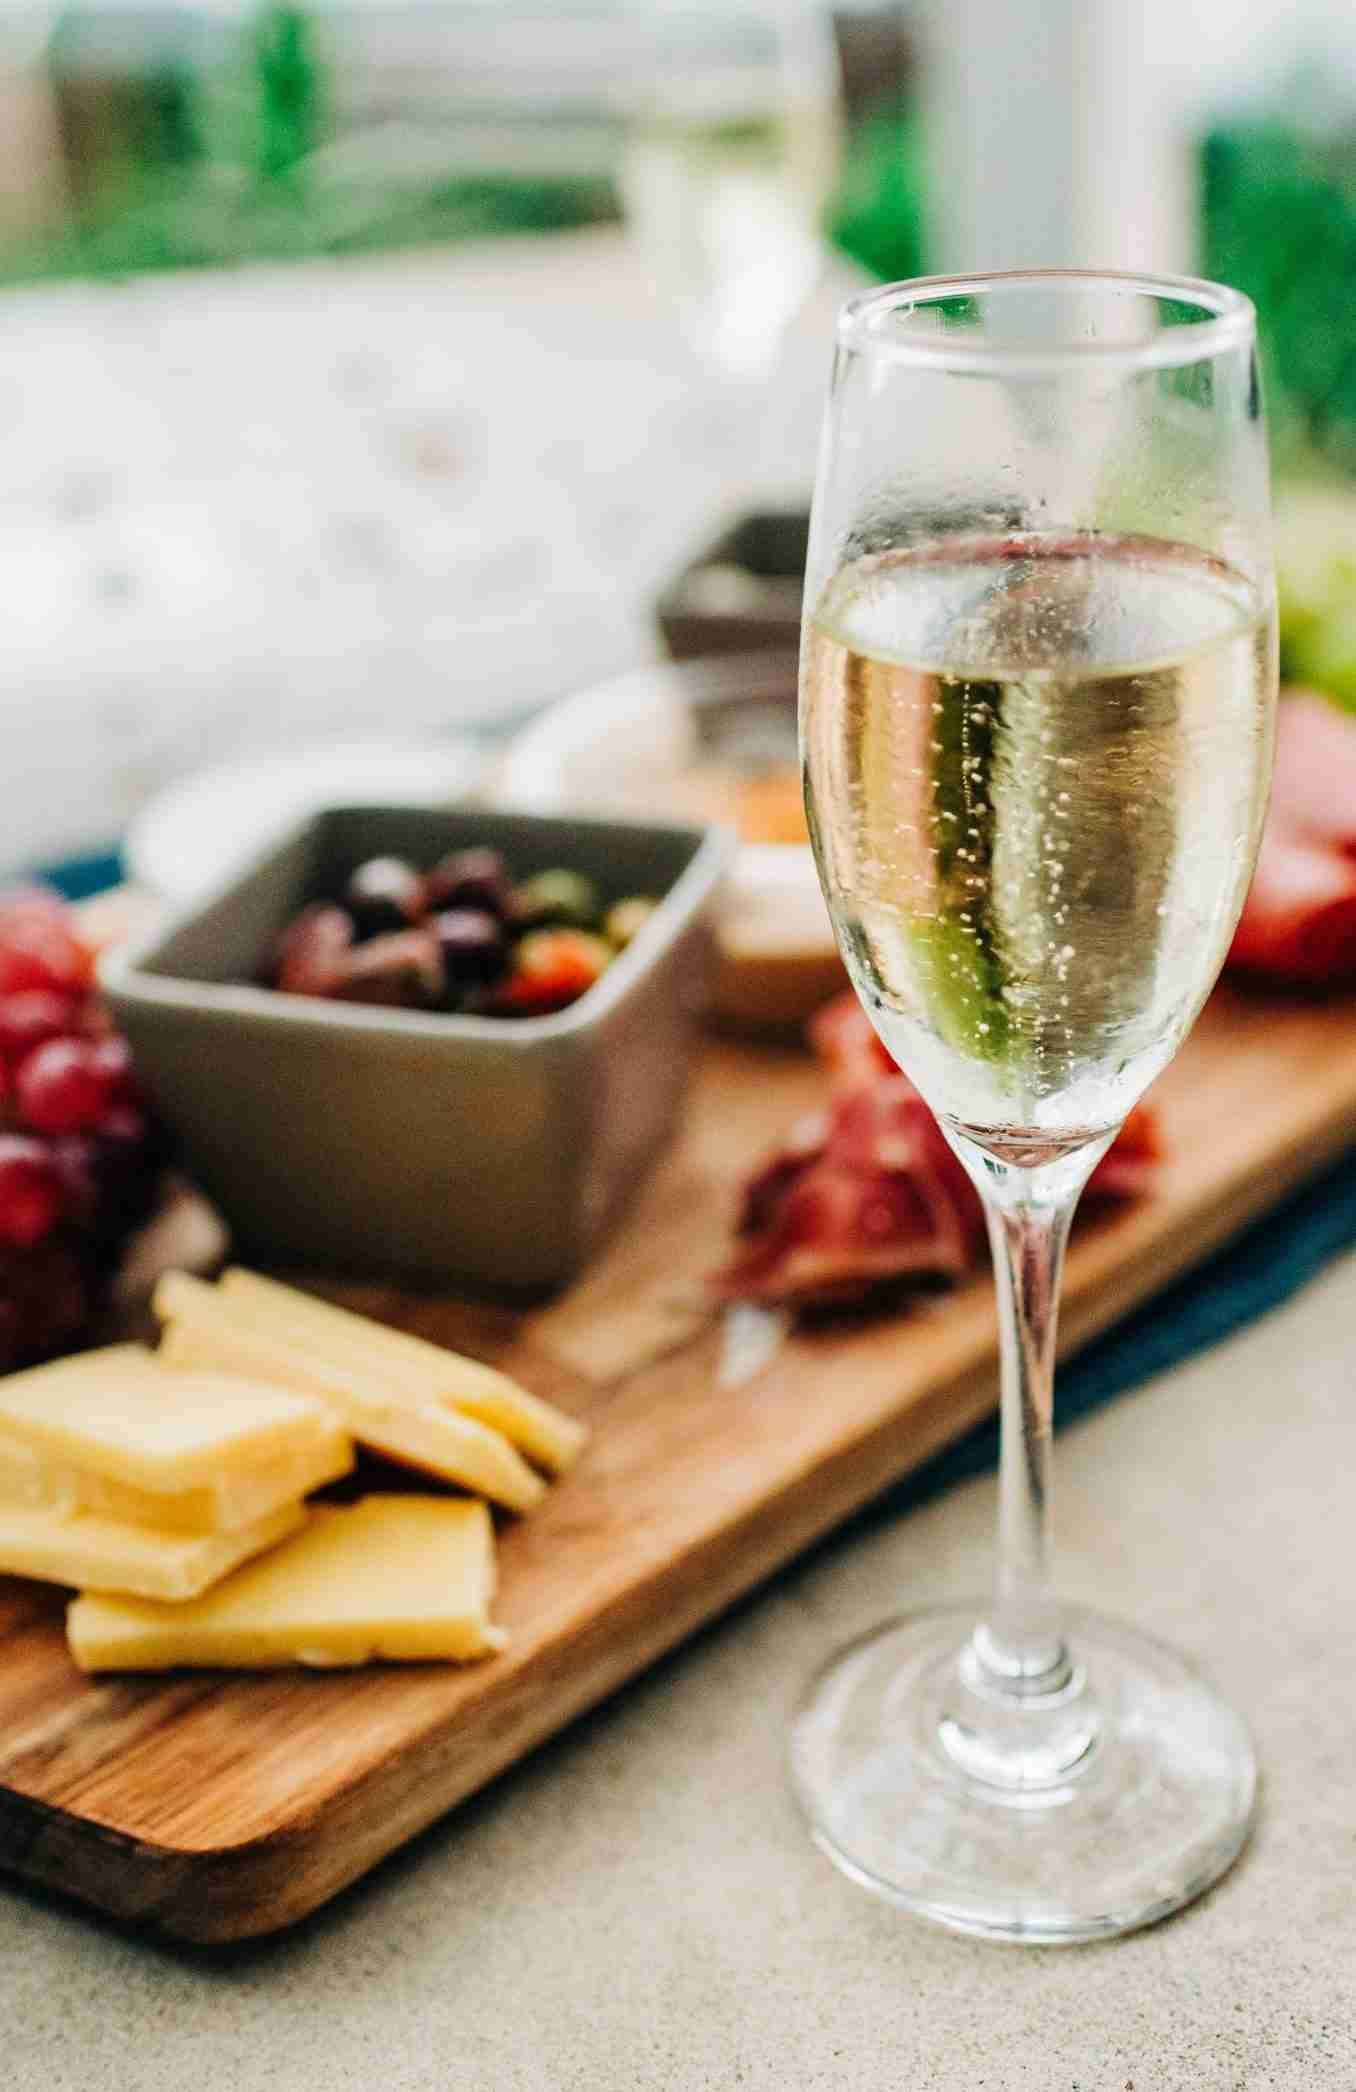 glass of sparkling wine with food